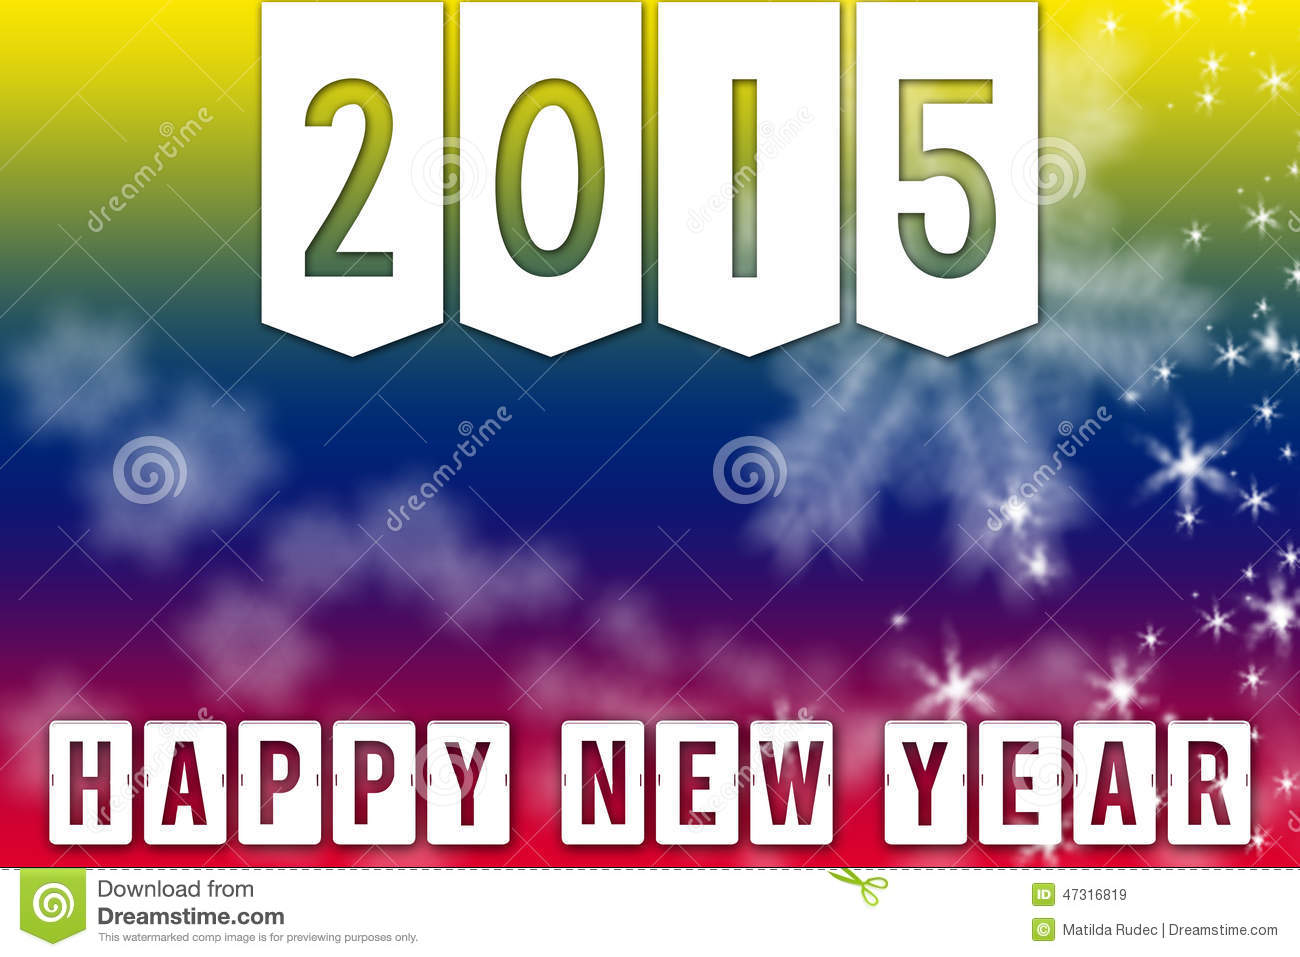 happy new year 2015 greeting colorful facebook backgroundbanner with white snowflakes and stars